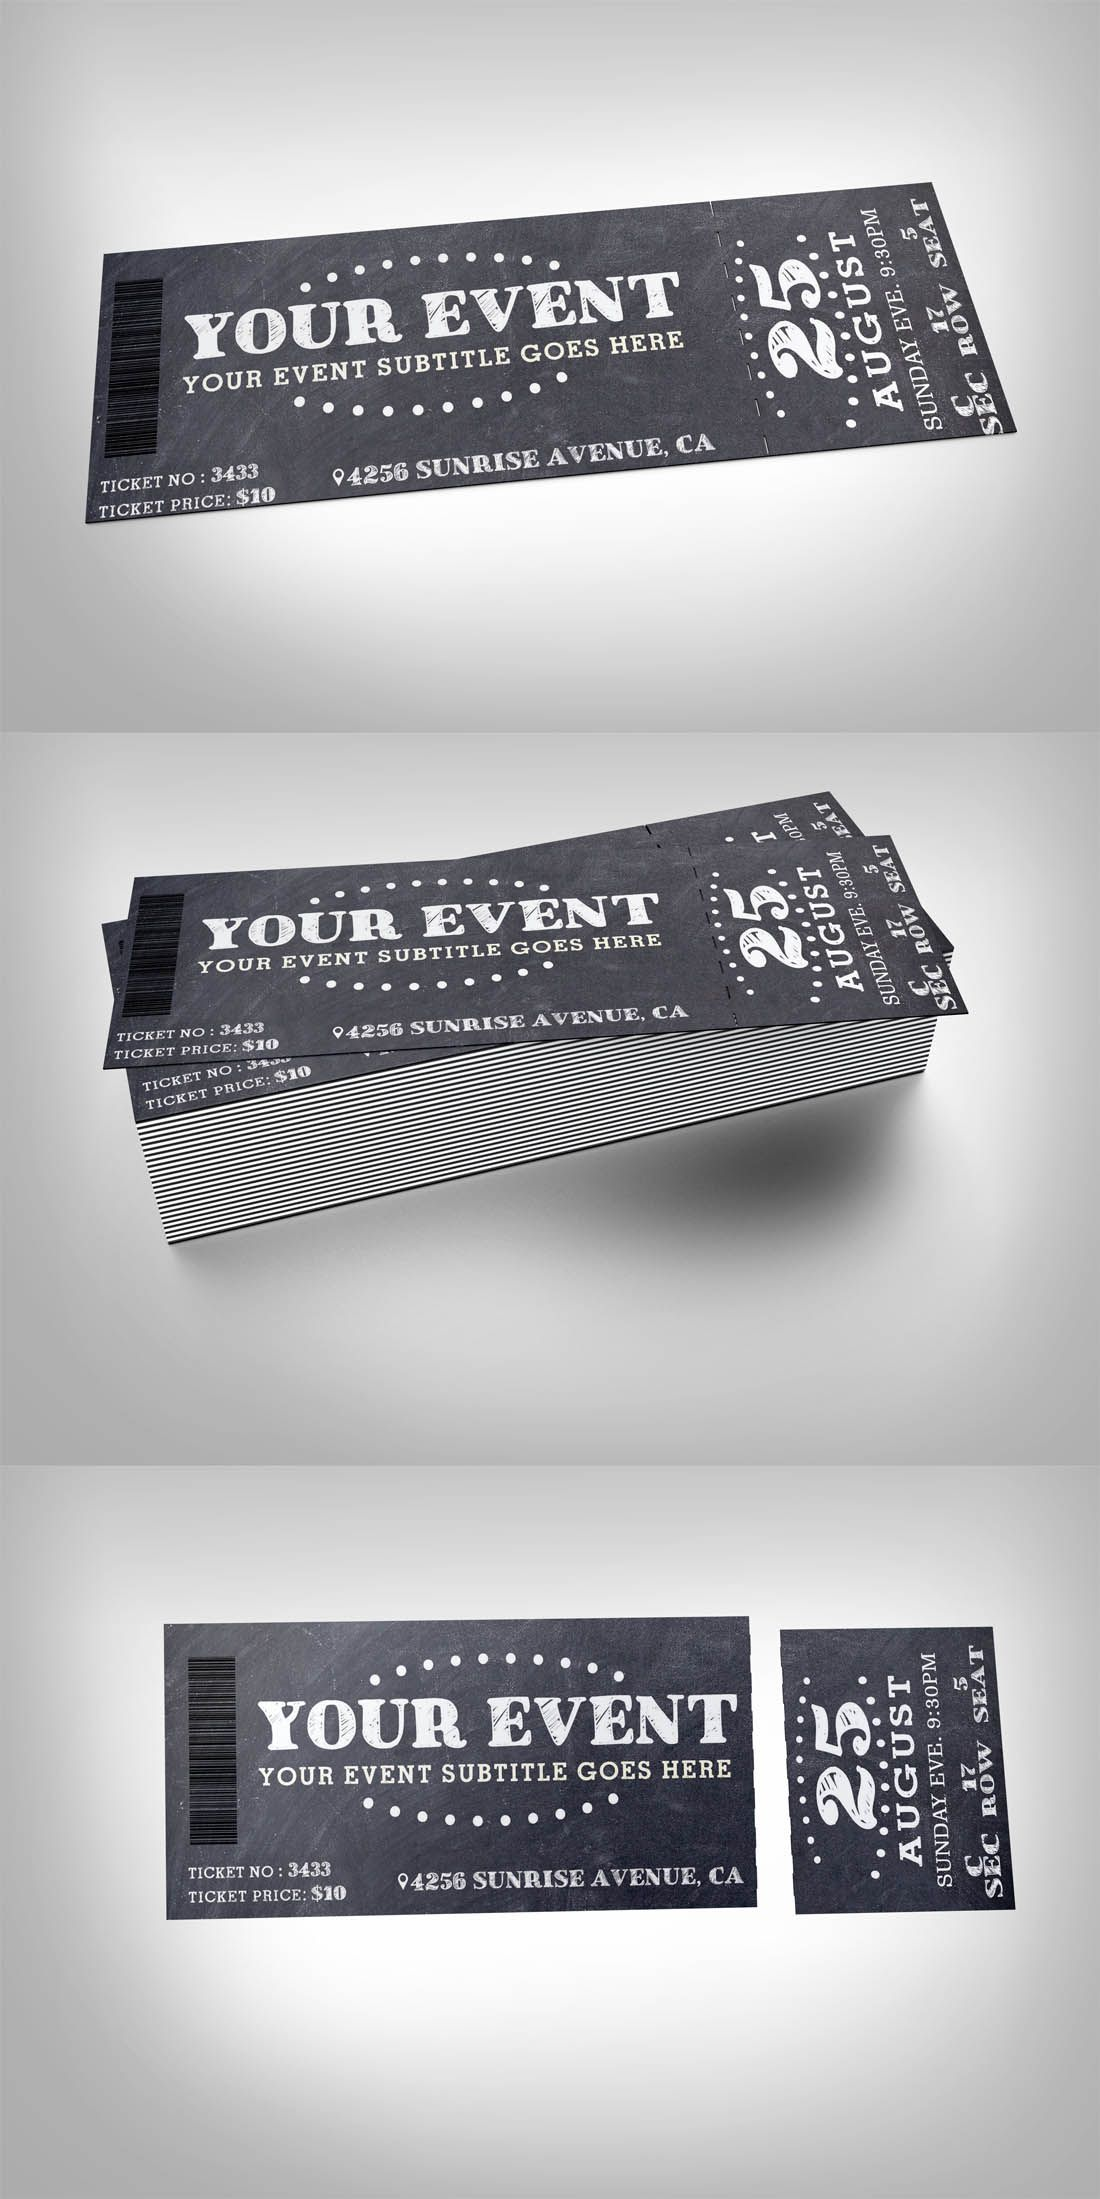 Chalkboard Event Ticket  How To Design A Ticket For An Event